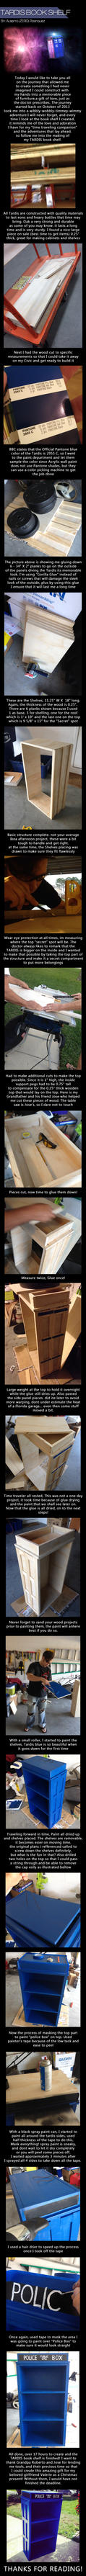 Tardis-book-shelf-creation-process by ZEROMaximusAurelius